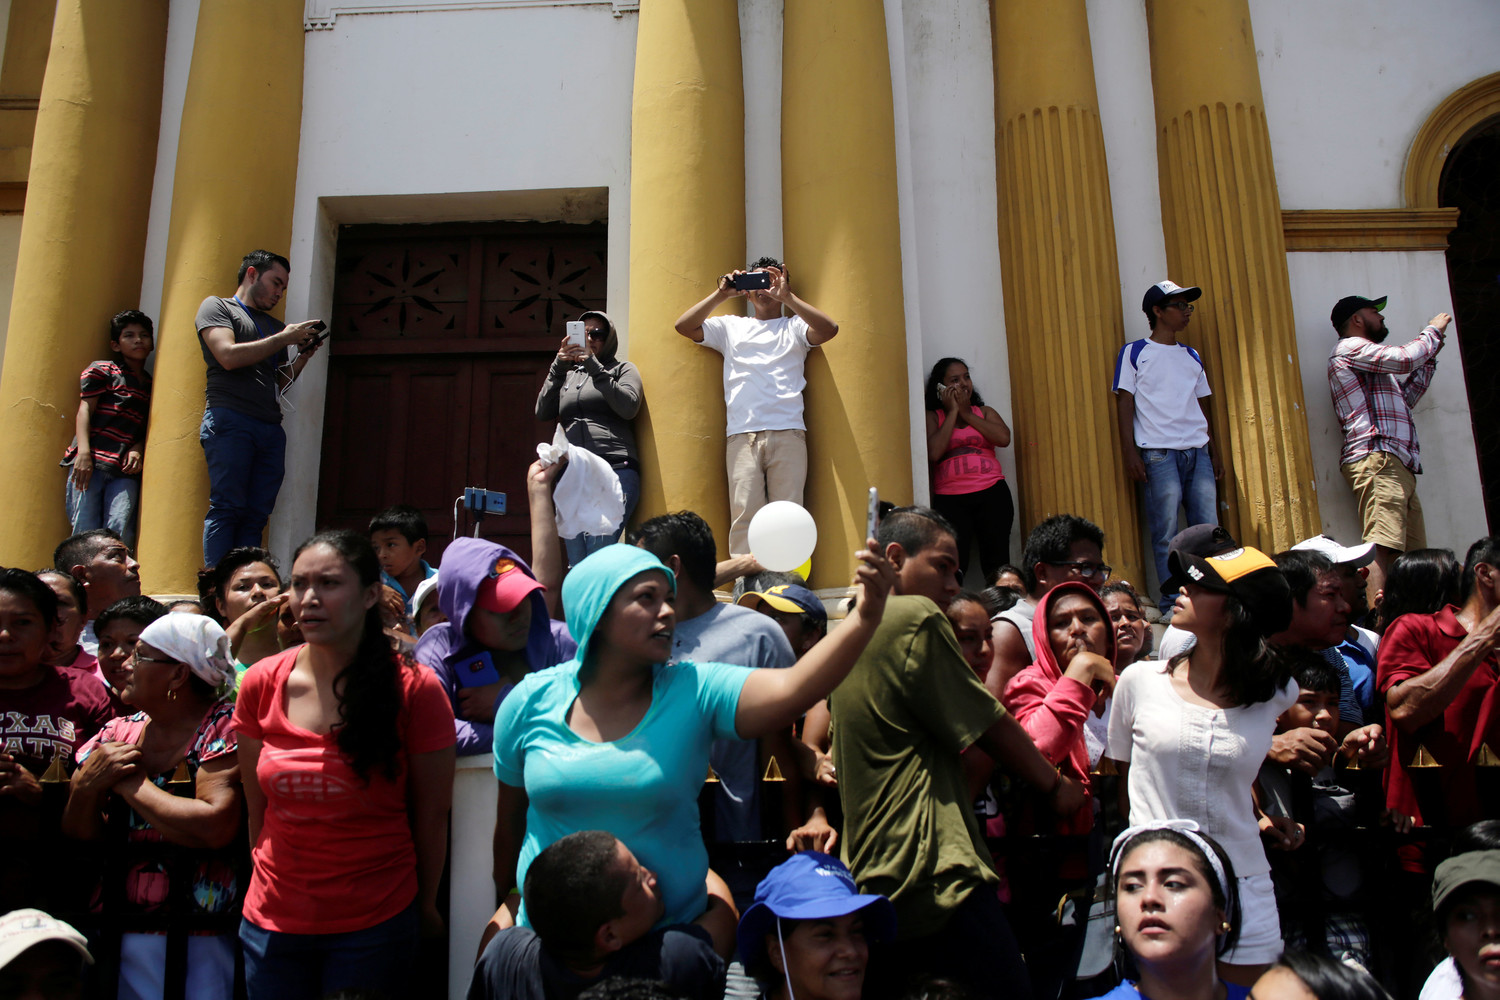 People react during the arrival of Catholic leaders as anti-government protests continue in Masaya, Nicaragua, June 21.